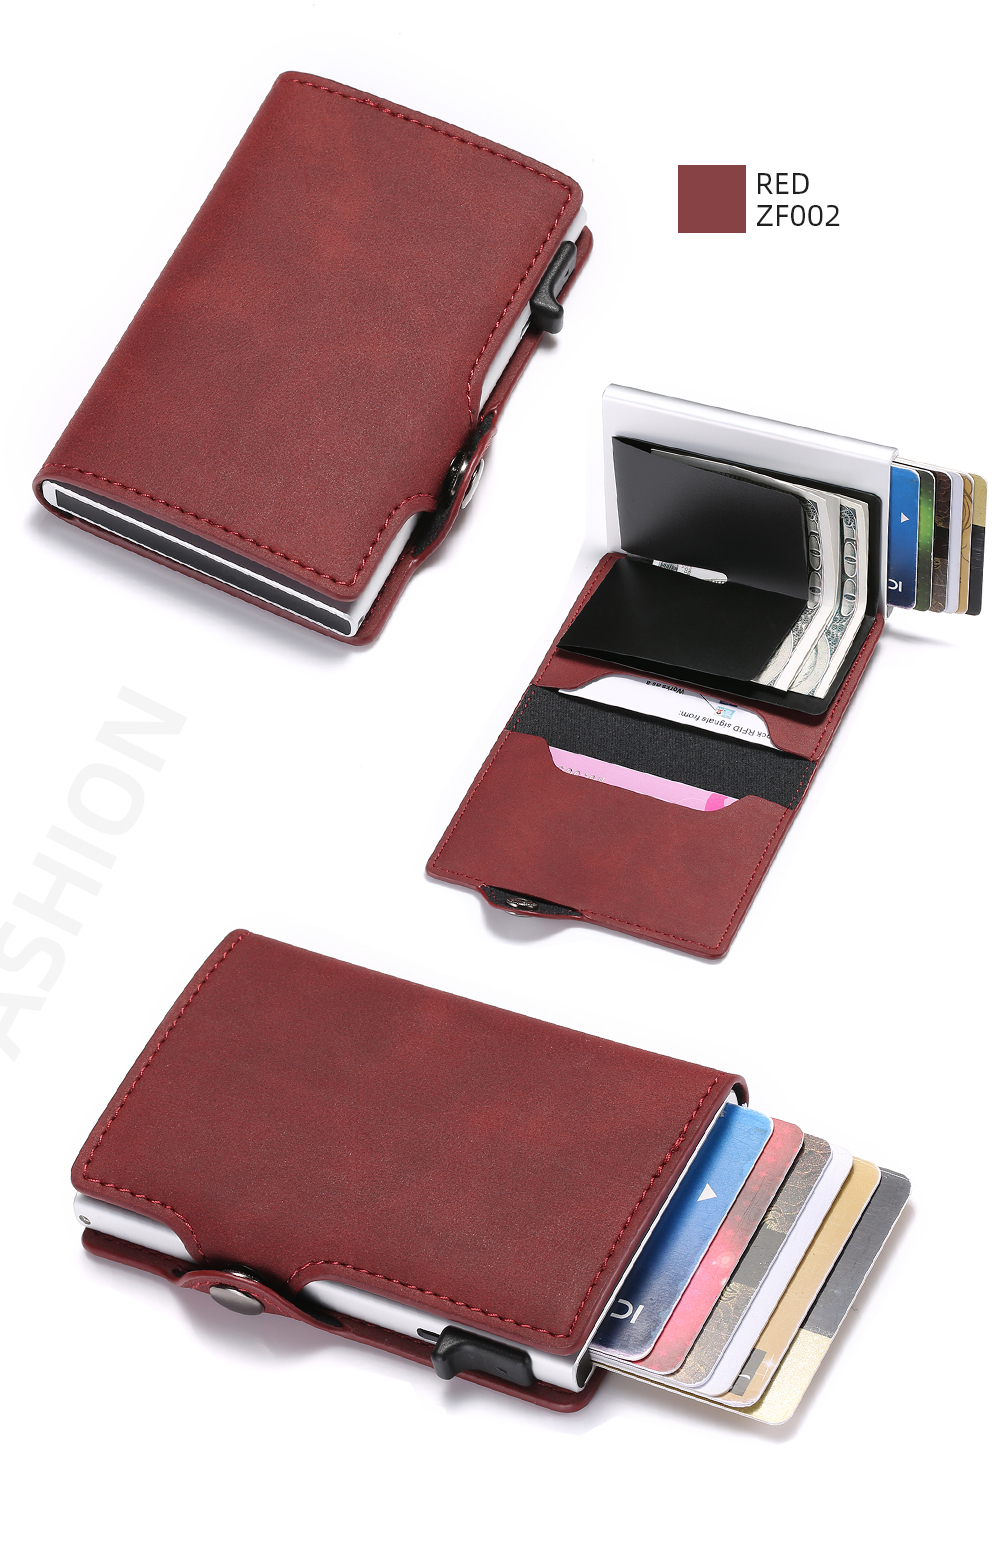 H7eb2eb745a5f41809073d67cf41a0d3cF - BISI GORO Single Box Card Holder PU Leather Card Wallet New Men RFID Blocking Aluminum Smart Multifunction Slim Wallet Card Case